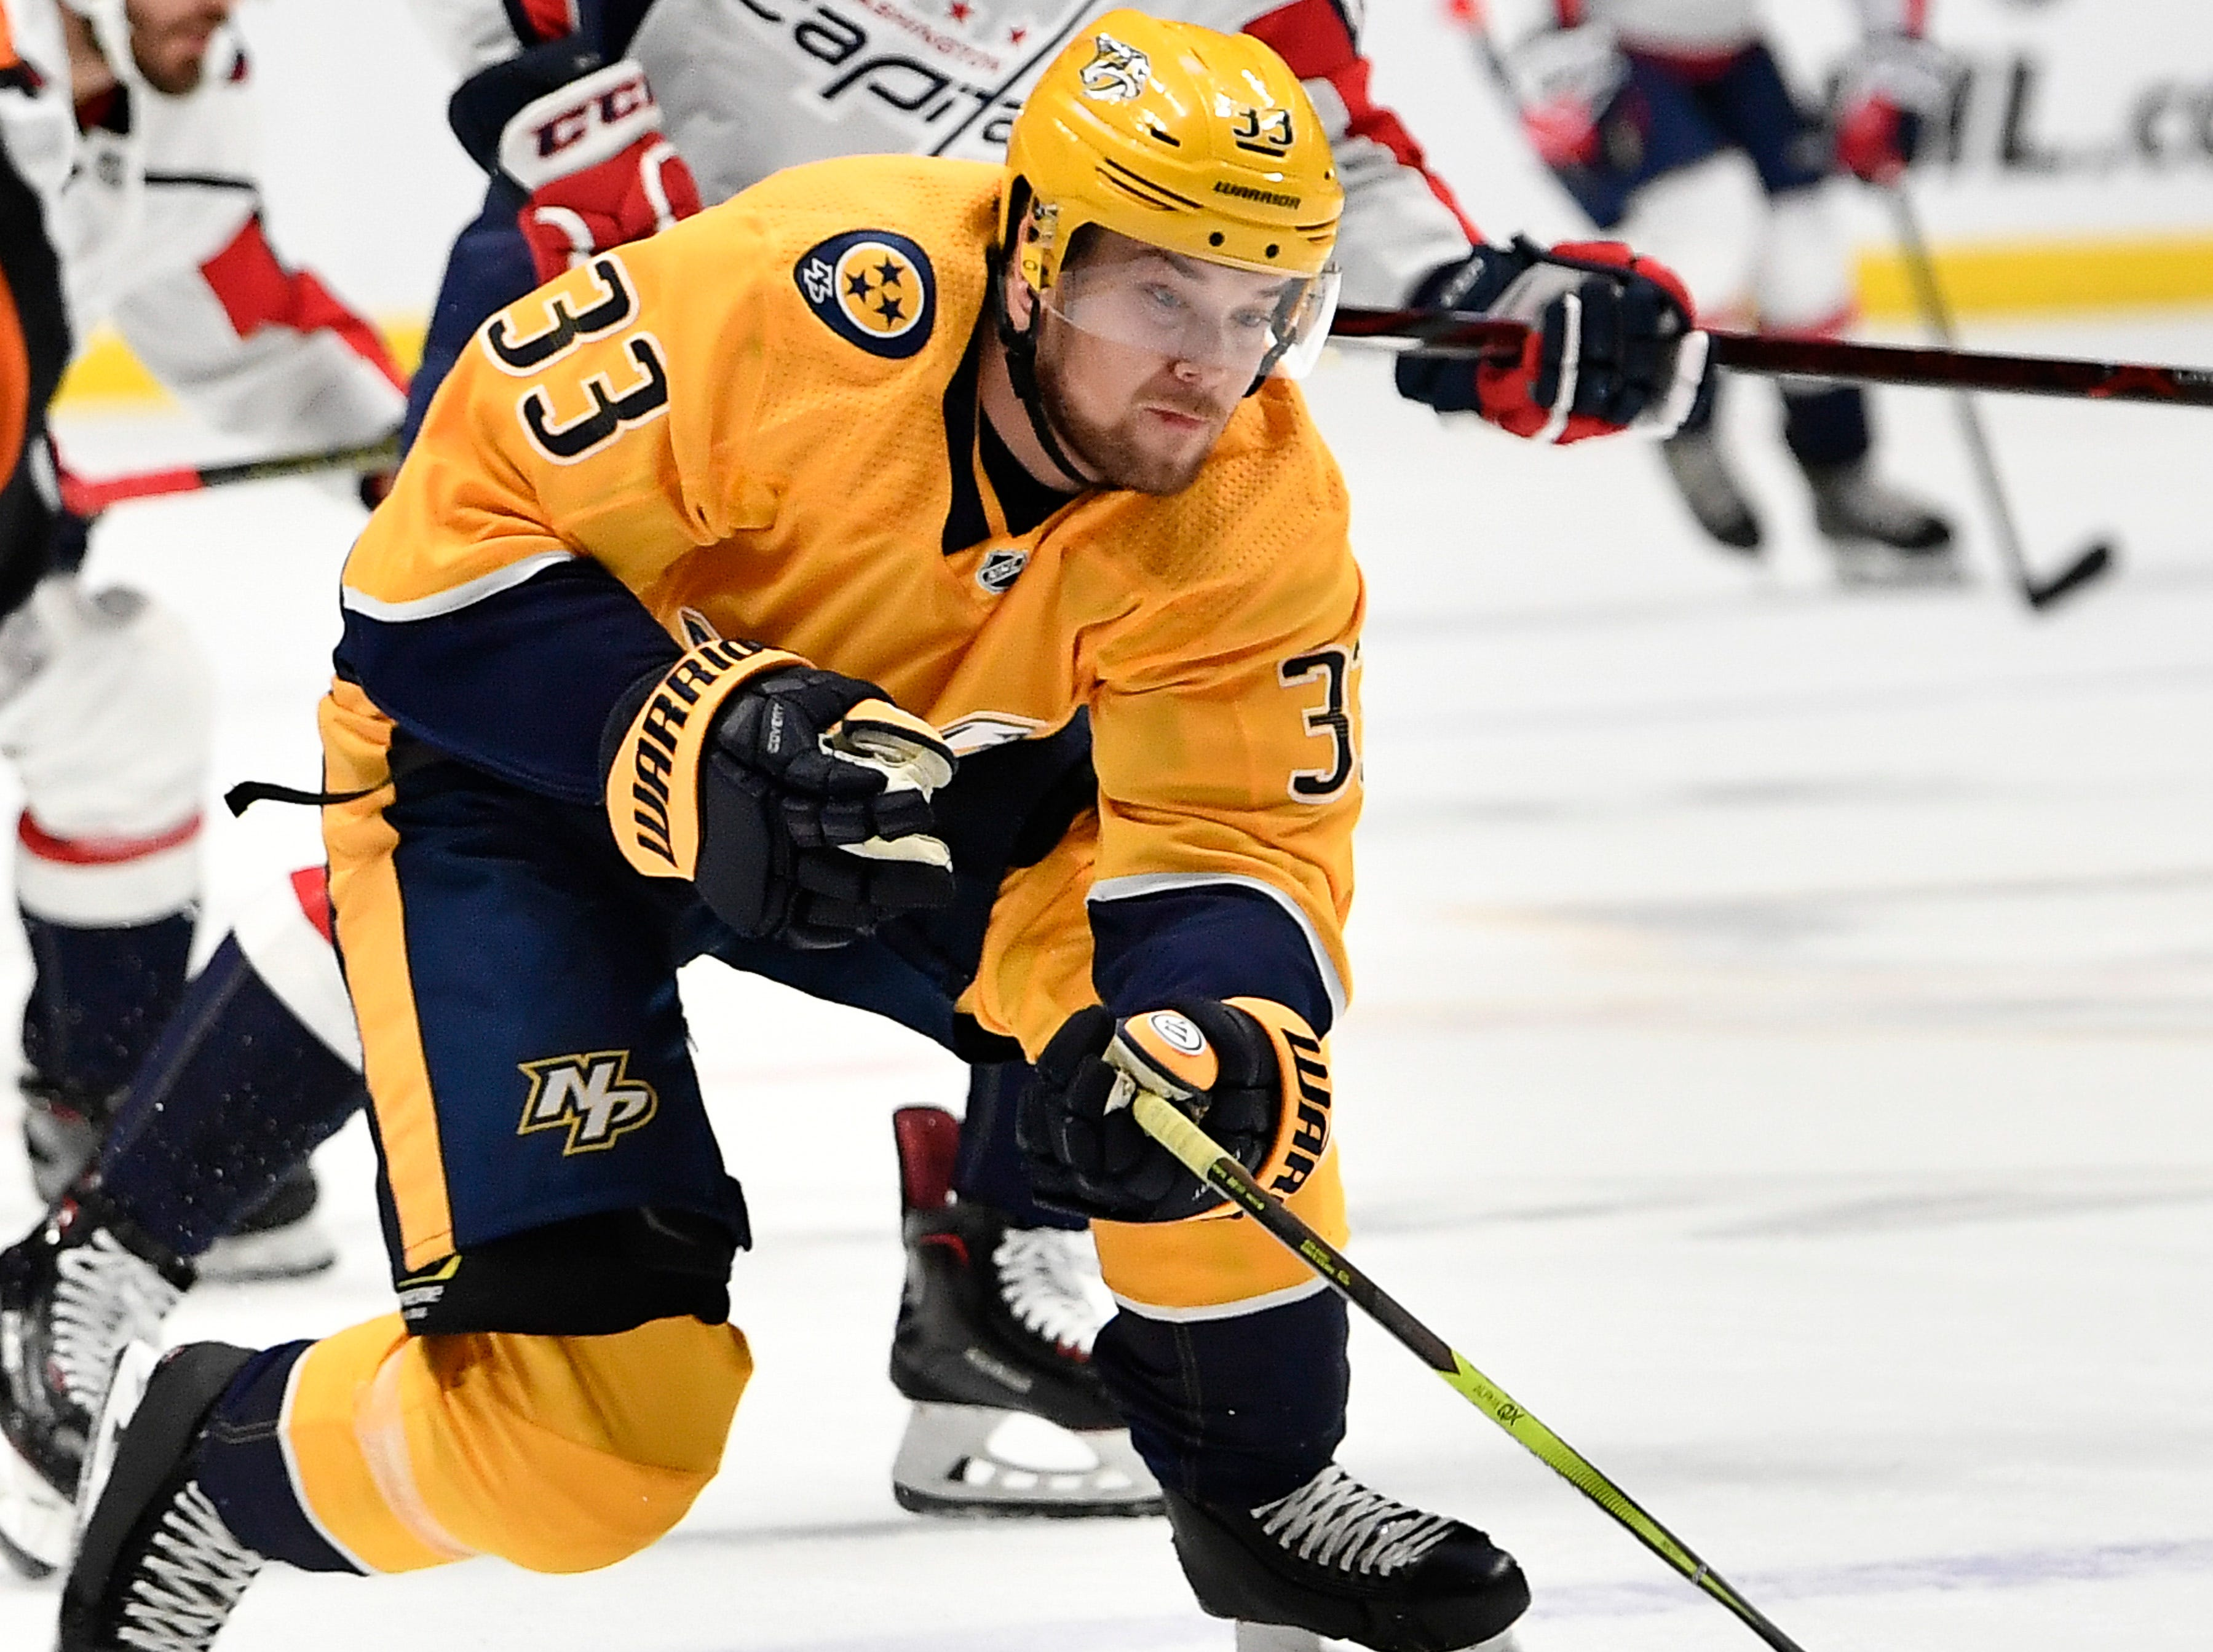 Predators right wing Viktor Arvidsson (33) speeds past the Capitals during the first period at Bridgestone Arena Tuesday, Jan. 15, 2019, in Nashville, Tenn.